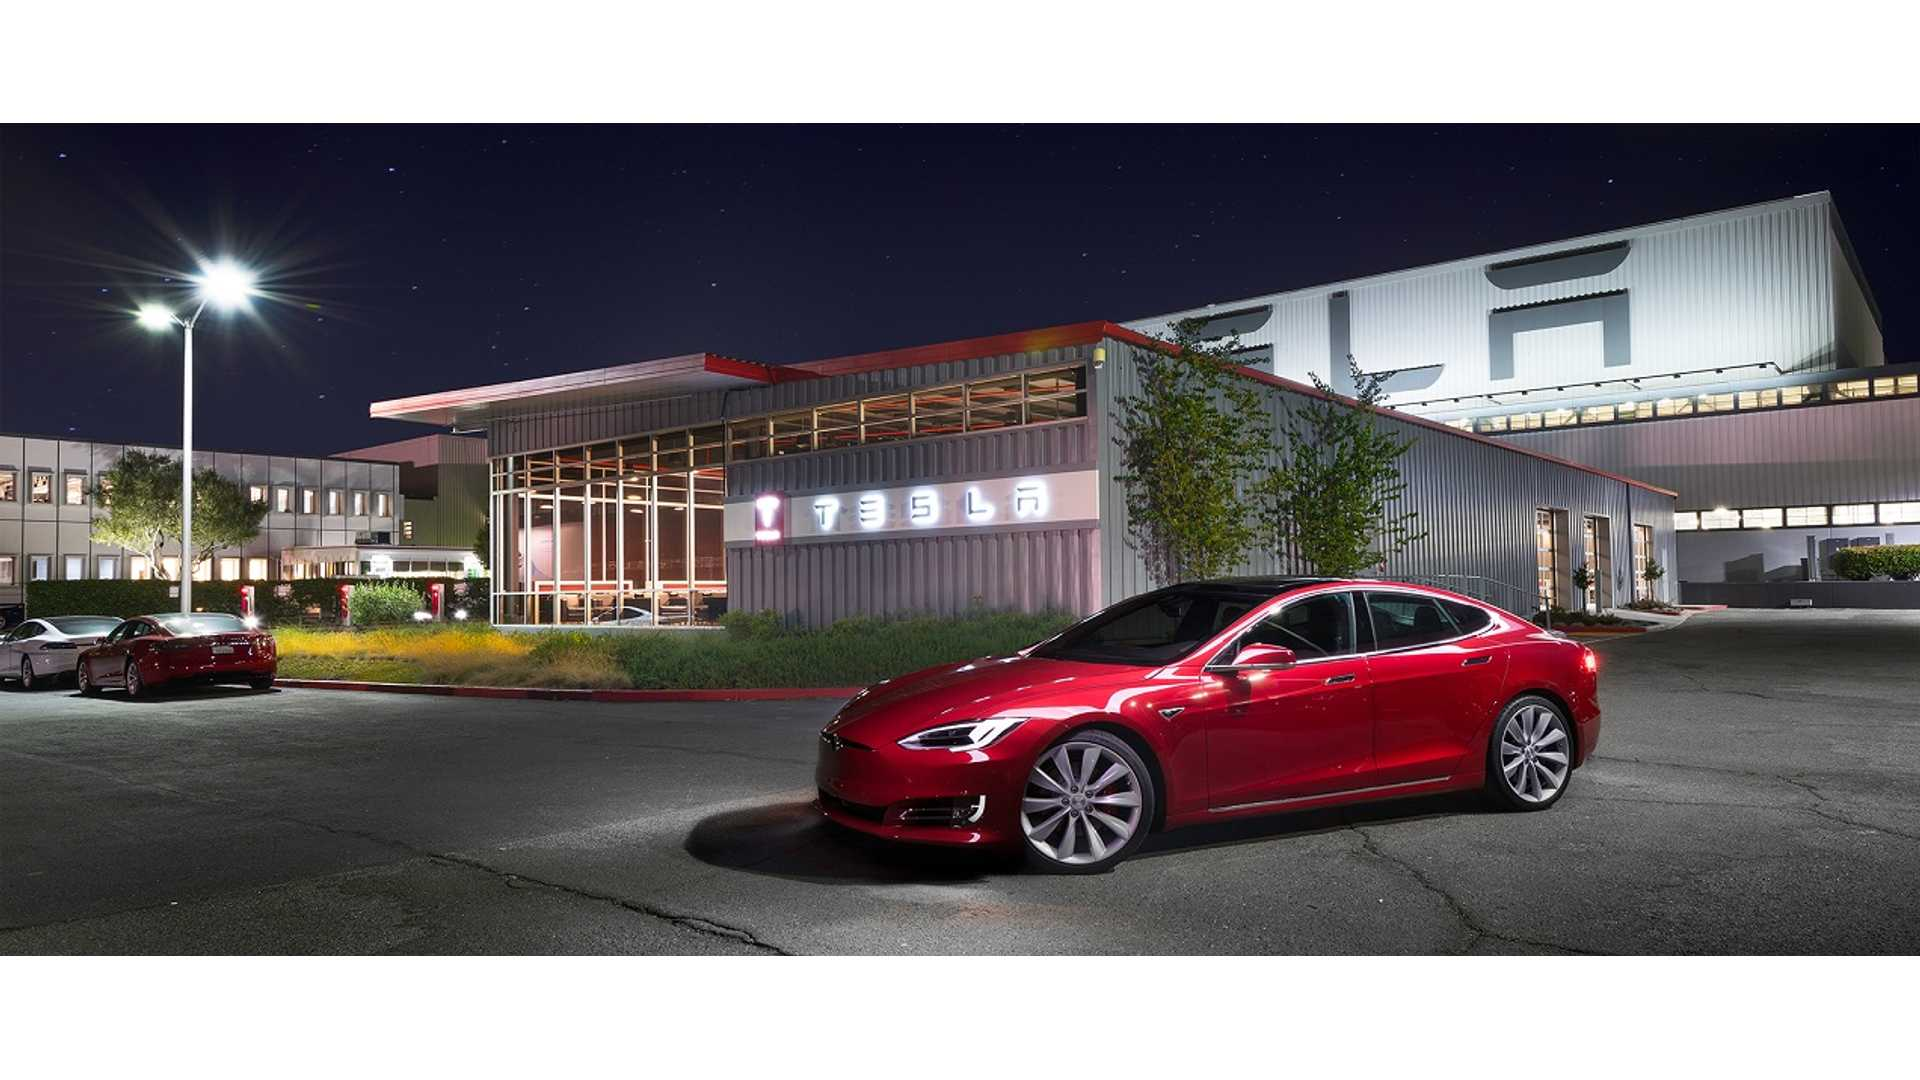 While Tesla's Elon Musk May Not Be Punctual, Big Auto Is Barely Crawling